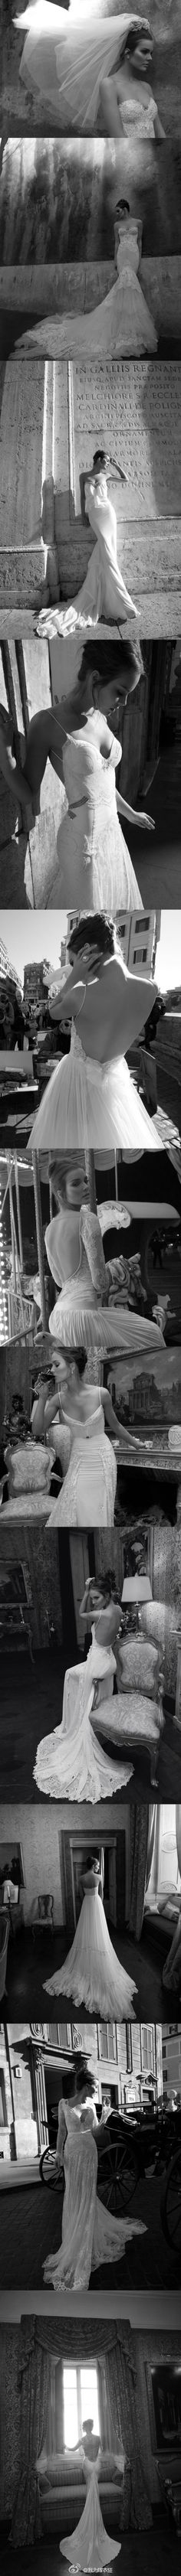 Gorgeous wedding dress editorial! love the poses